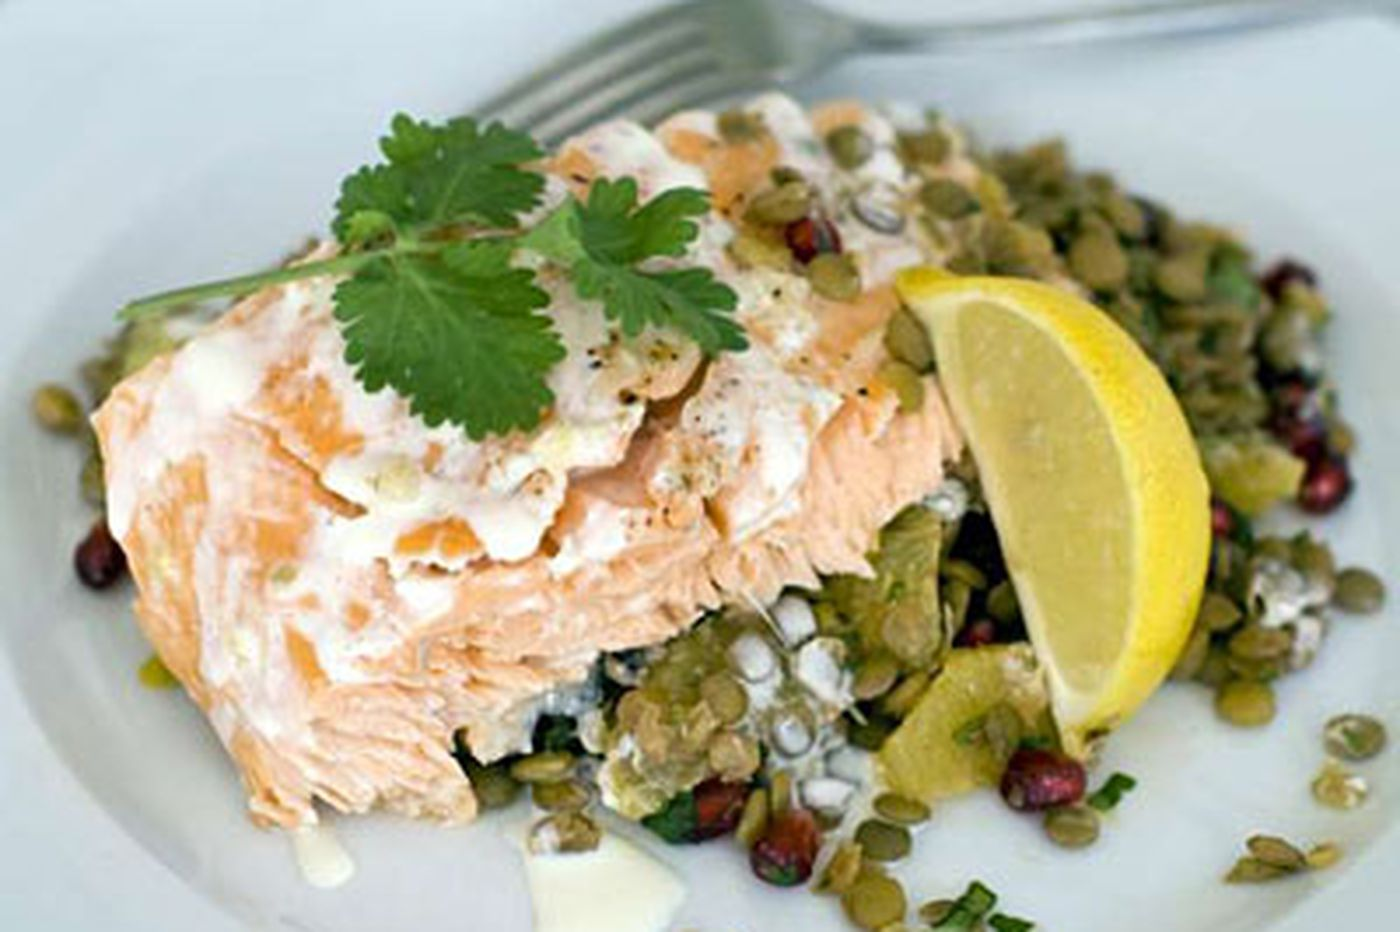 Rush Hour Gourmet: Roasted Salmon With Warm Lentil Salad